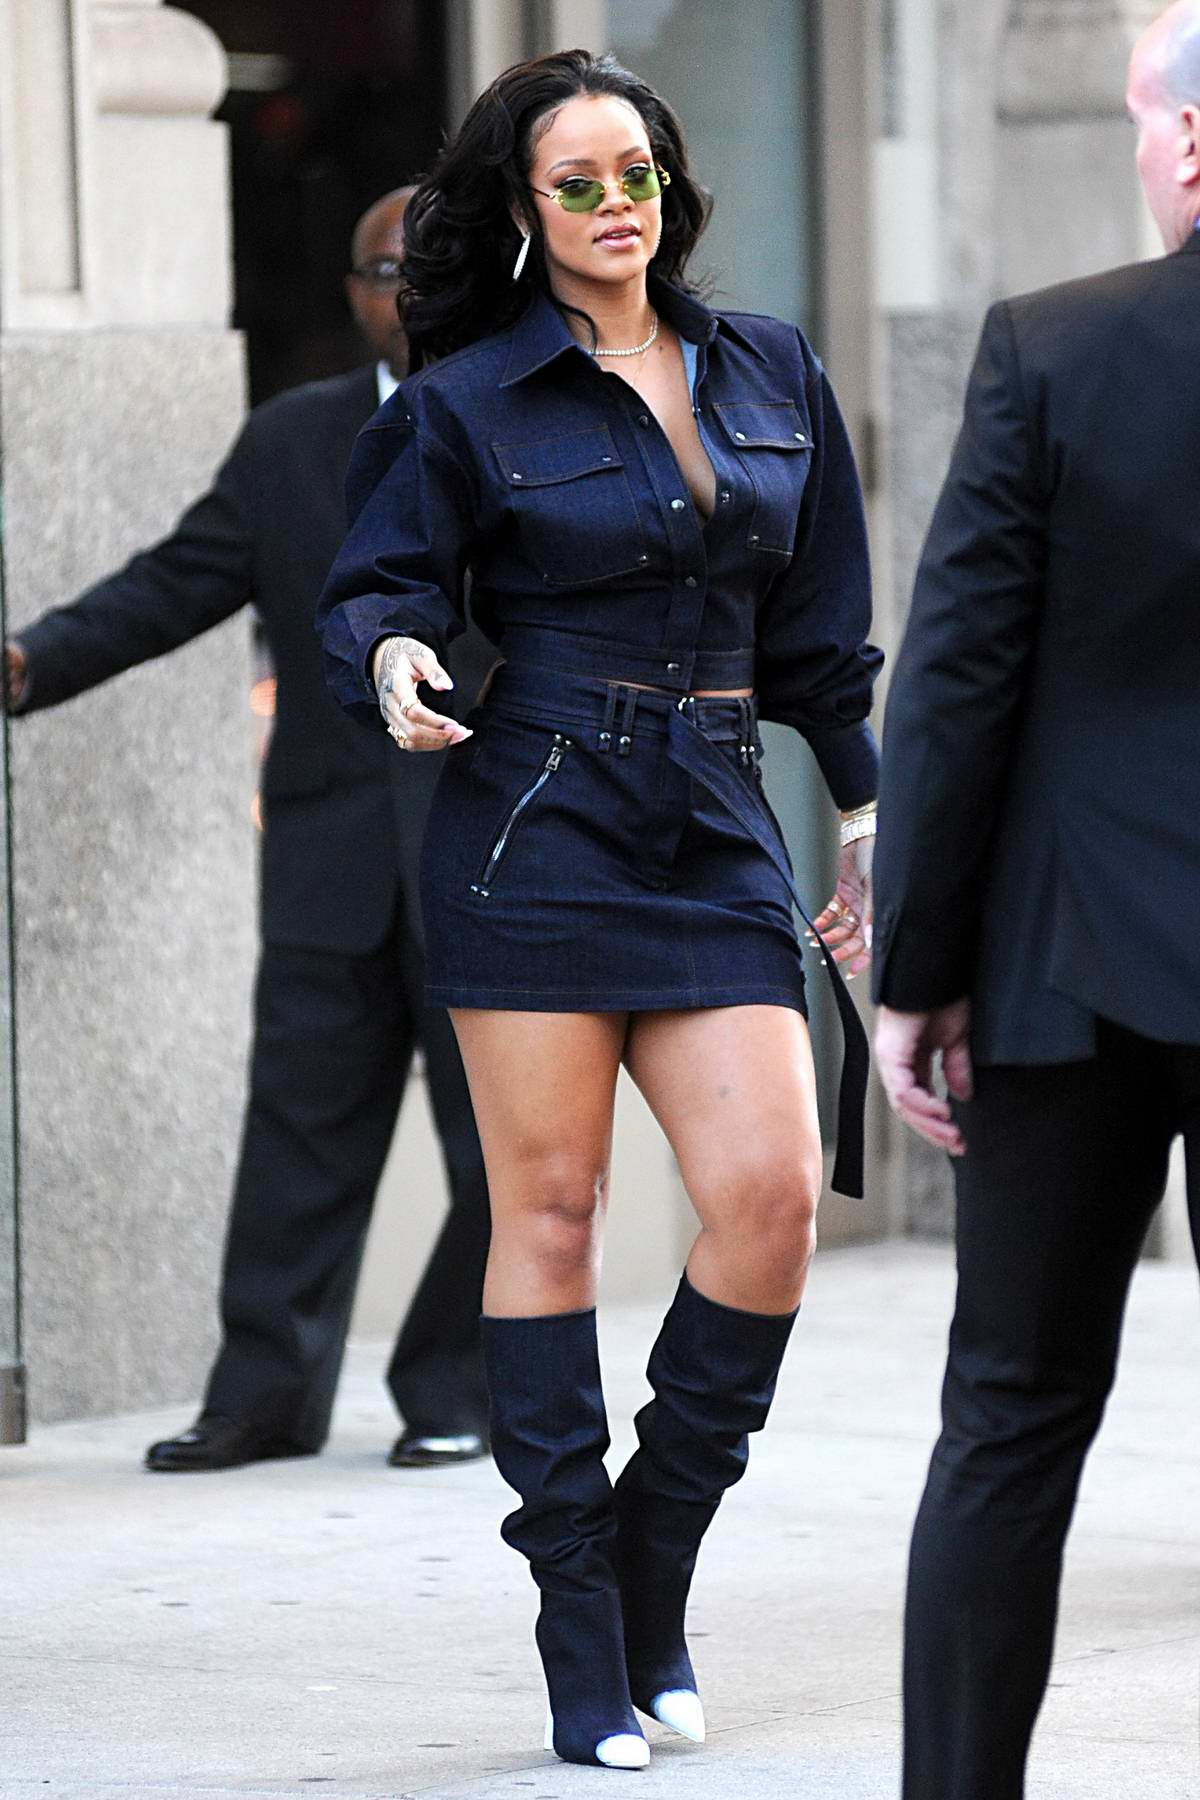 Rihanna in a blue denim outfit out and about in New York City